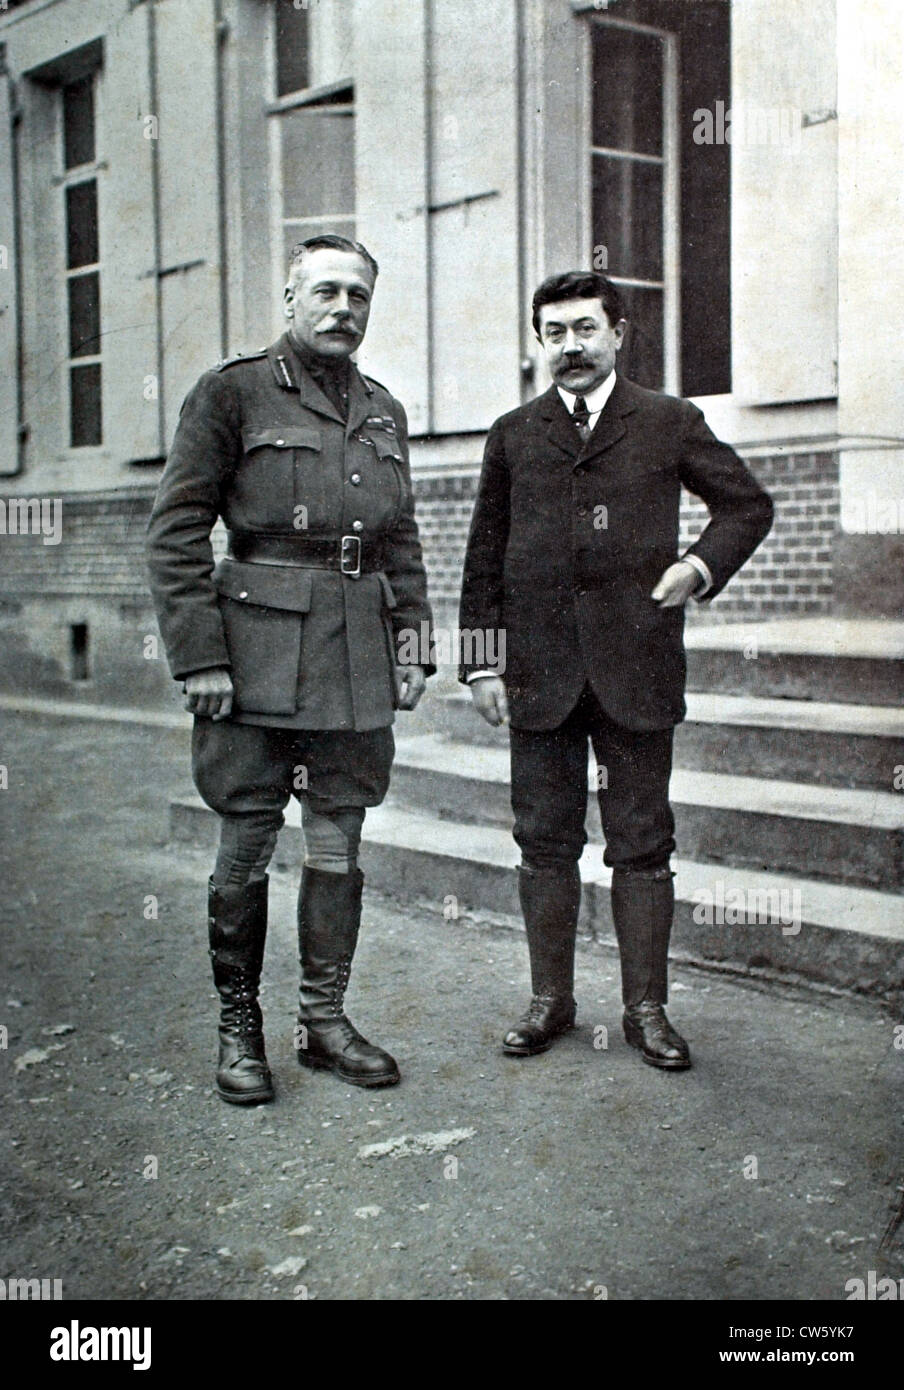 World War I. Sir Douglas Haig, commander-in-chief of the British armies, and Mr. Painlevé, French war minister - Stock Image